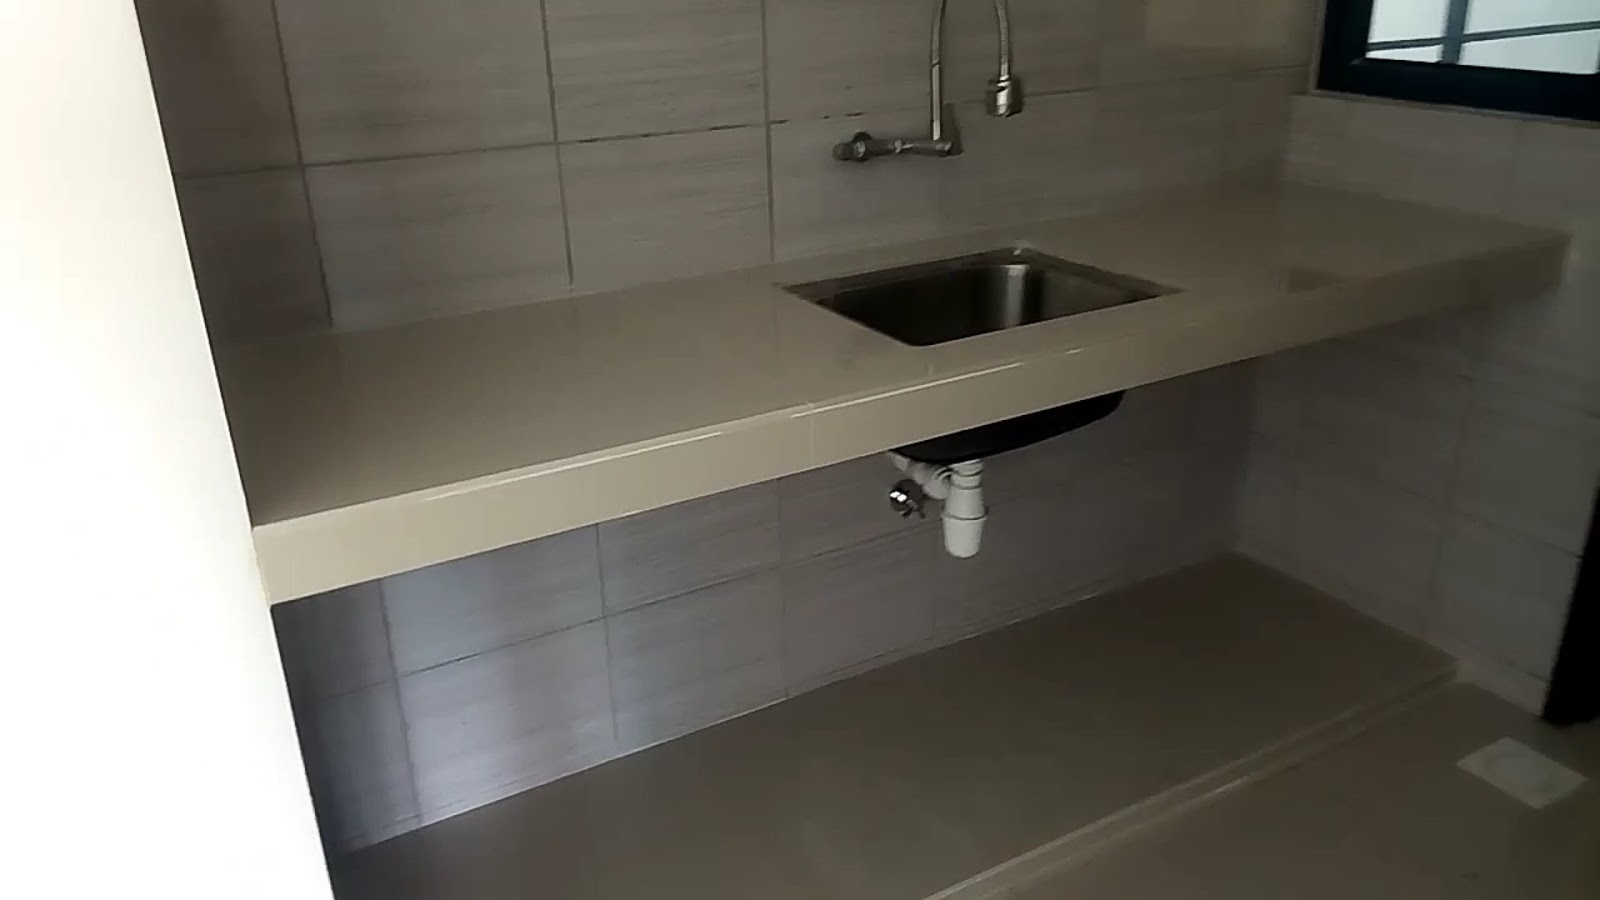 Table Top Kitchen Meja Dapur Konkrit Tile Warna Cerah Satu